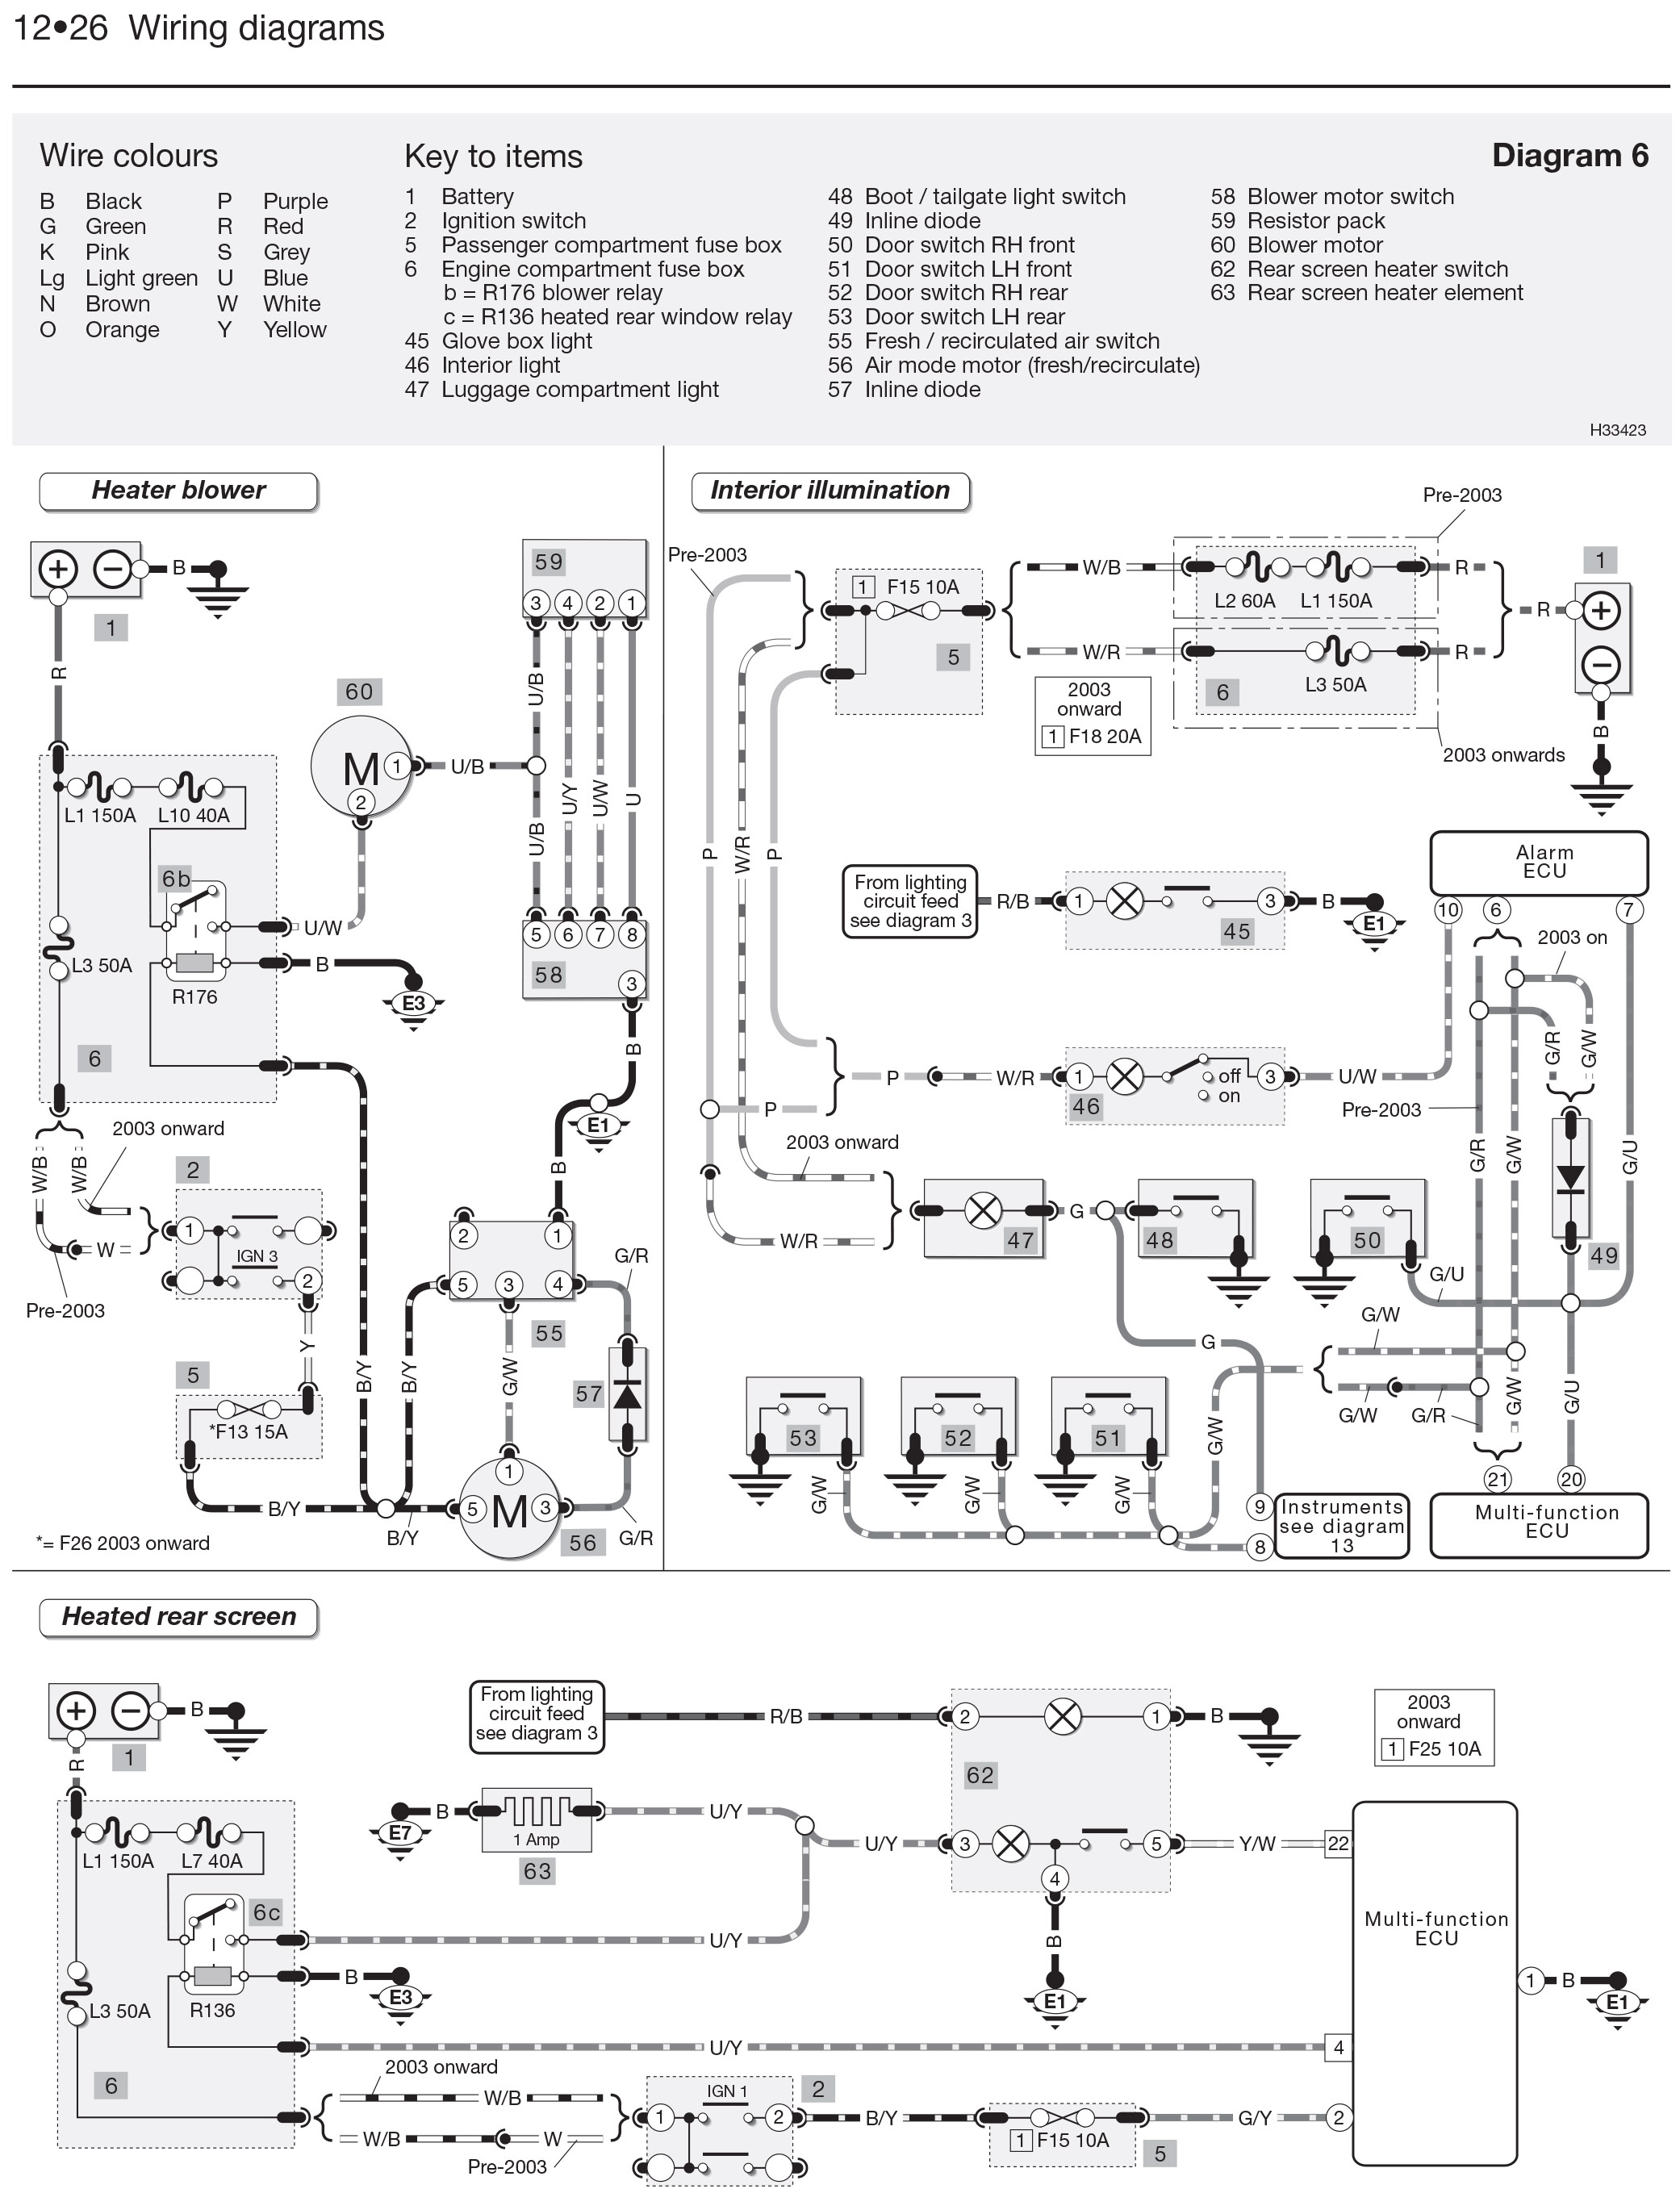 Wiring Diagram For Rover 45 - Wiring Diagrams DataUssel